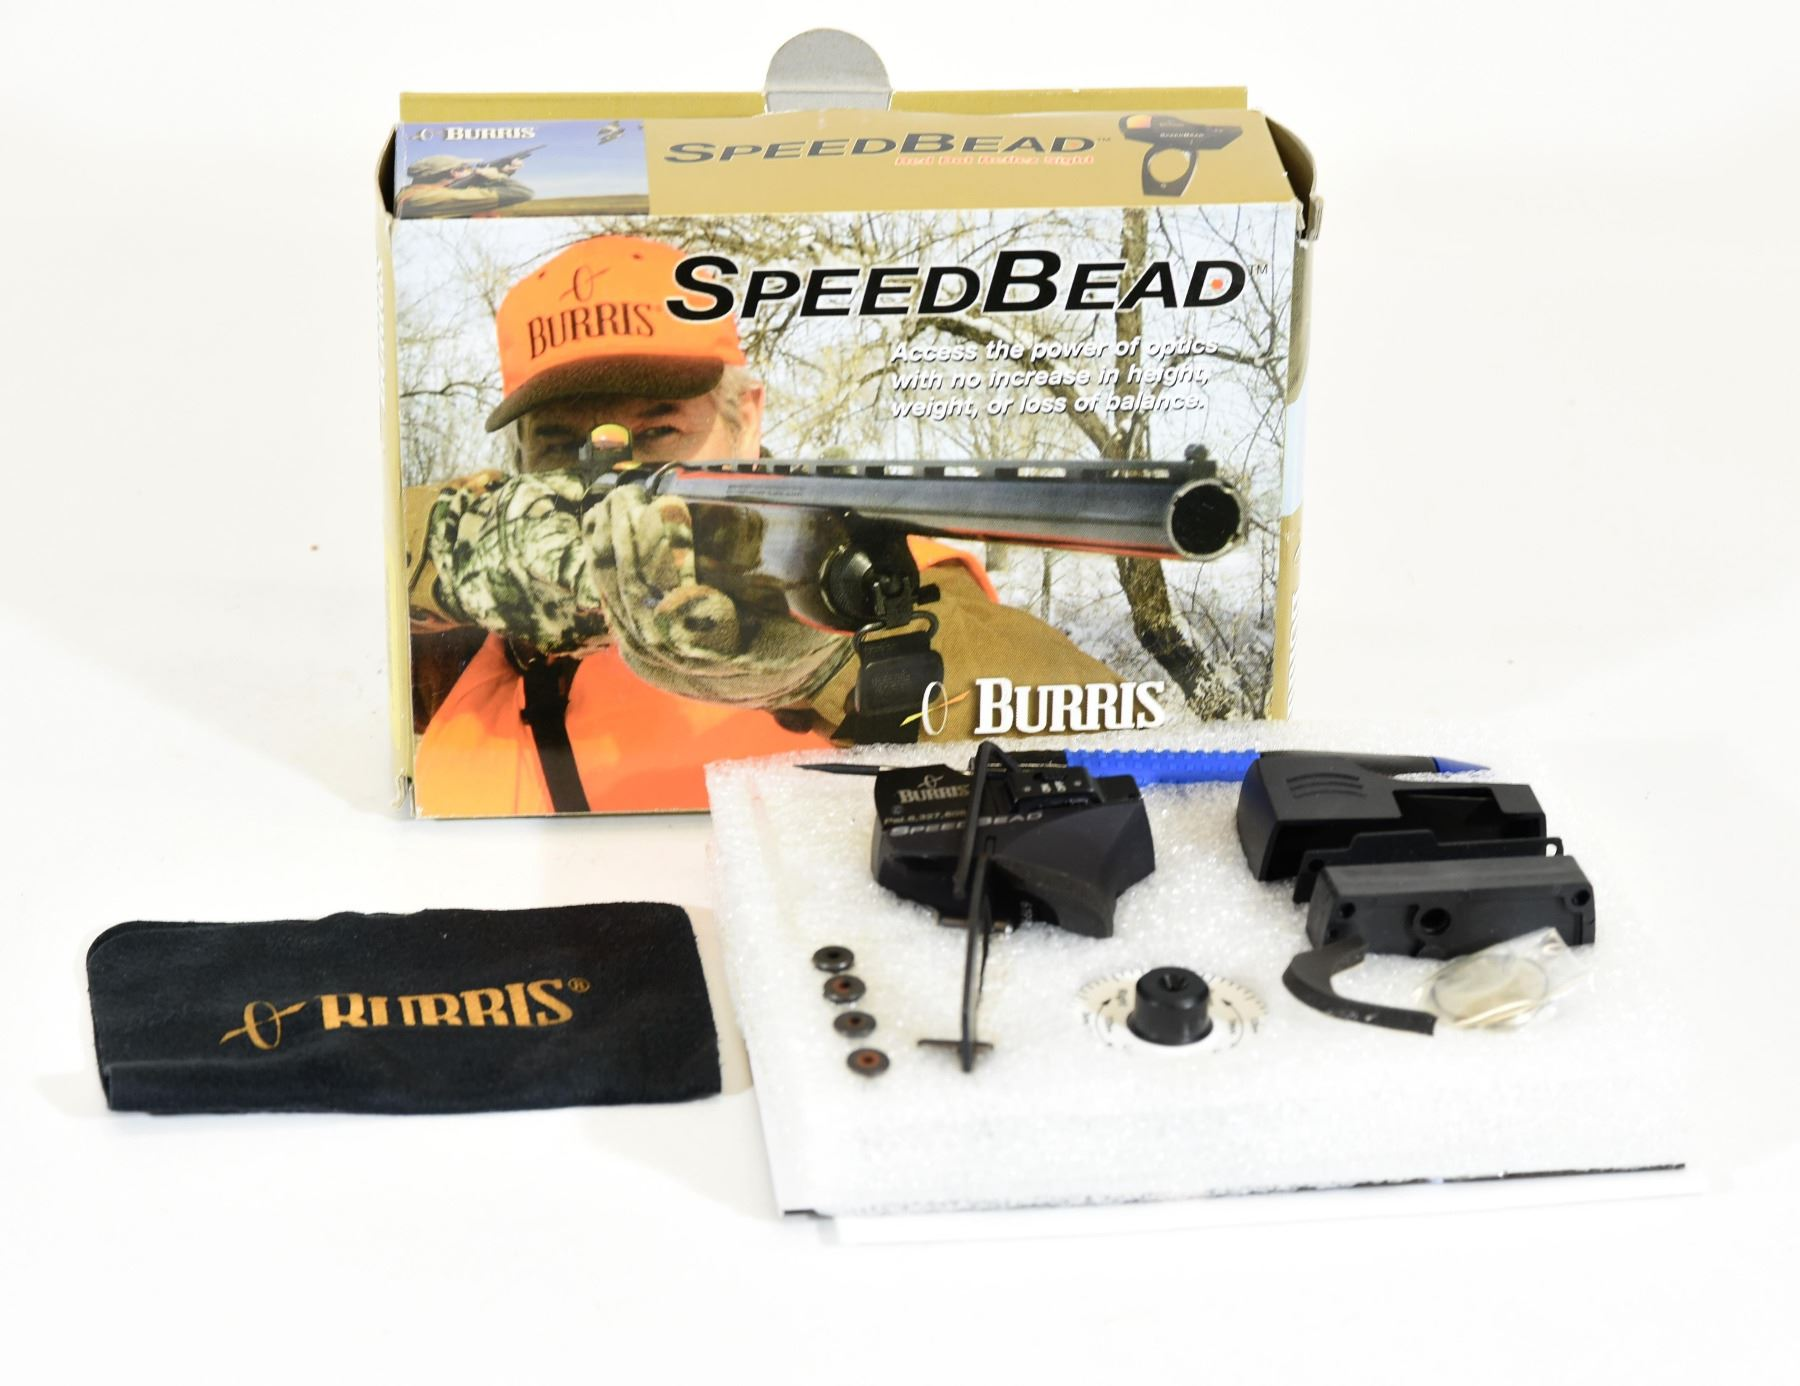 Burris Speed Bead